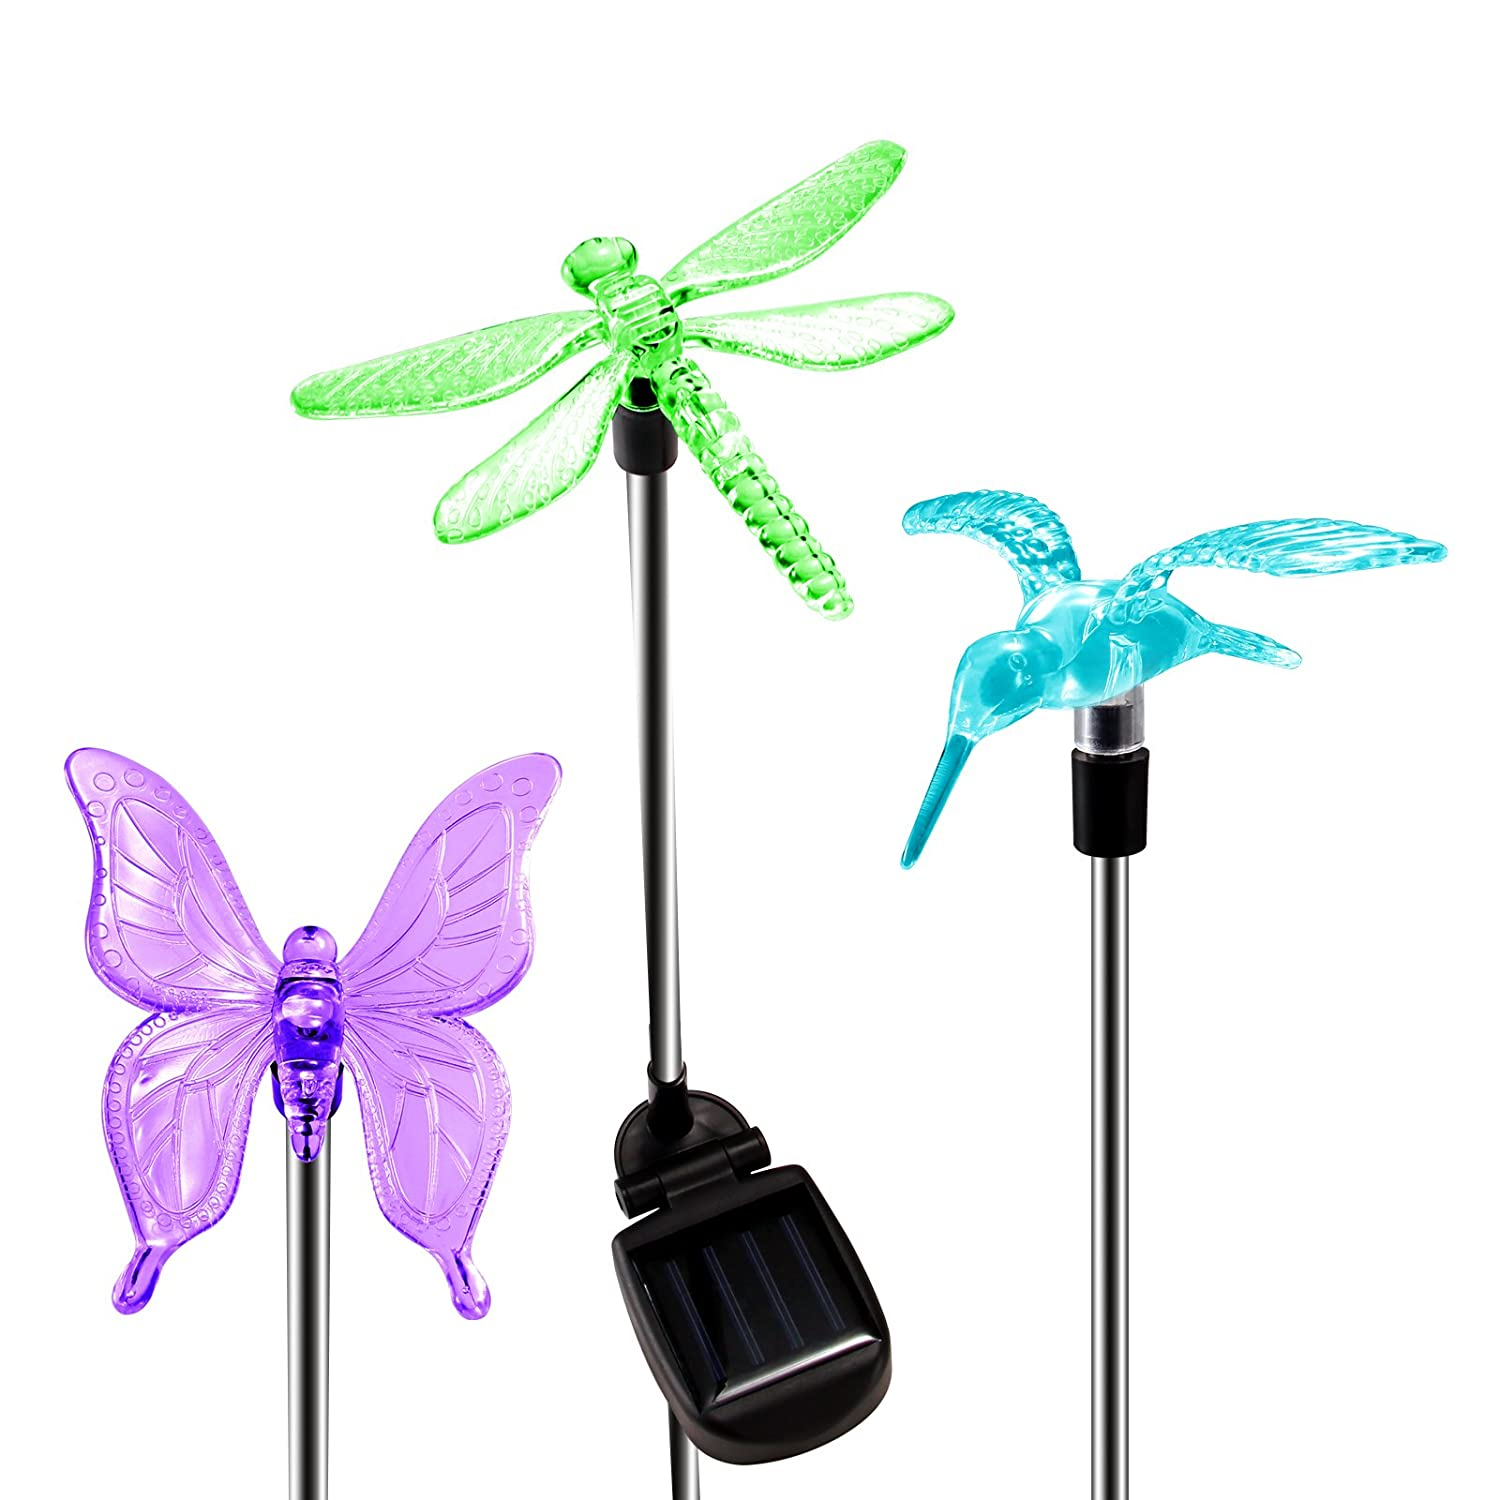 Garden Solar Lights Outdoor for Christmas, 3 OxyLED Figurine Light Stakes, Multi-Color Changing Decorative Landscape Lighting Path Light LED Hummingbird Butterfly Dragonfly for Pathway Patio Lawn Yard